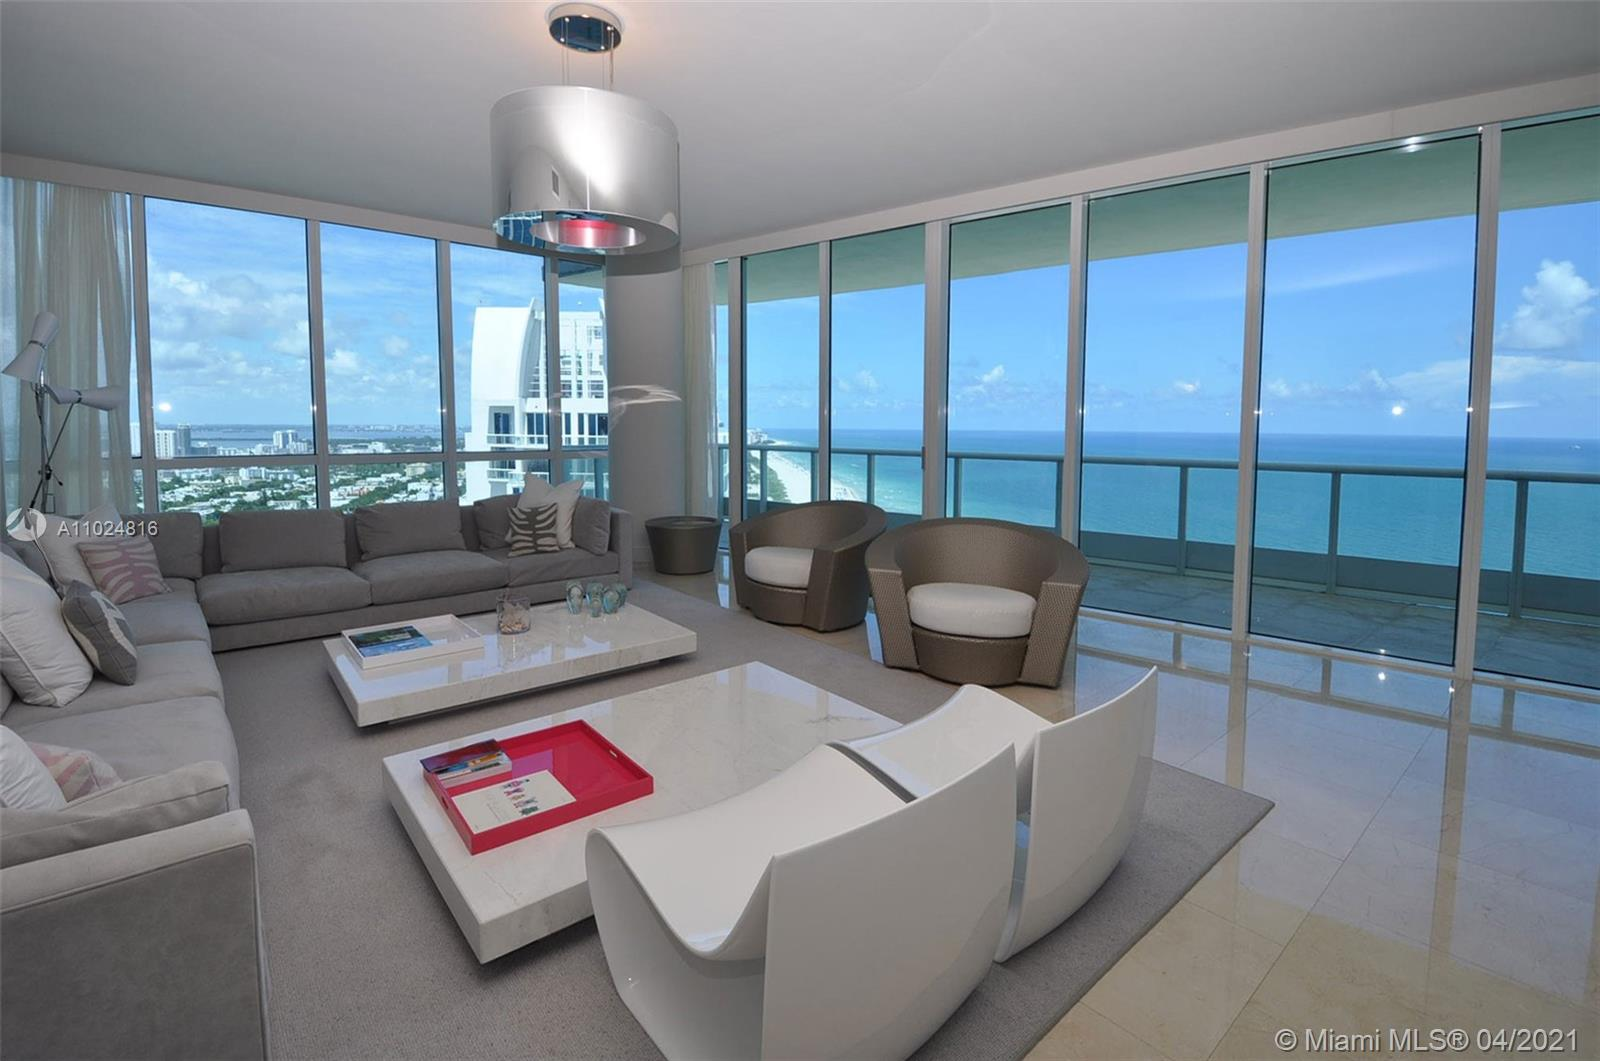 One of the best corner, direct ocean apartments at The Continuum in South Beach.  And, way up high on the 36th floor! This 2 Bed, 2½ Bath luxury apartment offers over 2000 sqft of luxury living space, with floor-to-ceiling windows, a very spacious private terrace and probably some of the best beach views you will ever see.  The split floor-plan has direct East and direct North views, with spacious bedrooms and a grand living area.  The Continuum is a private and gated community in the SoFi district of Miami Beach, and offers a private beach club, onsite restaurant, world-class health club, tennis courts and more.  It is just a few blocks from Joe's Stone Crab, Prime 112 and a host of other extraordinary dining experiences.